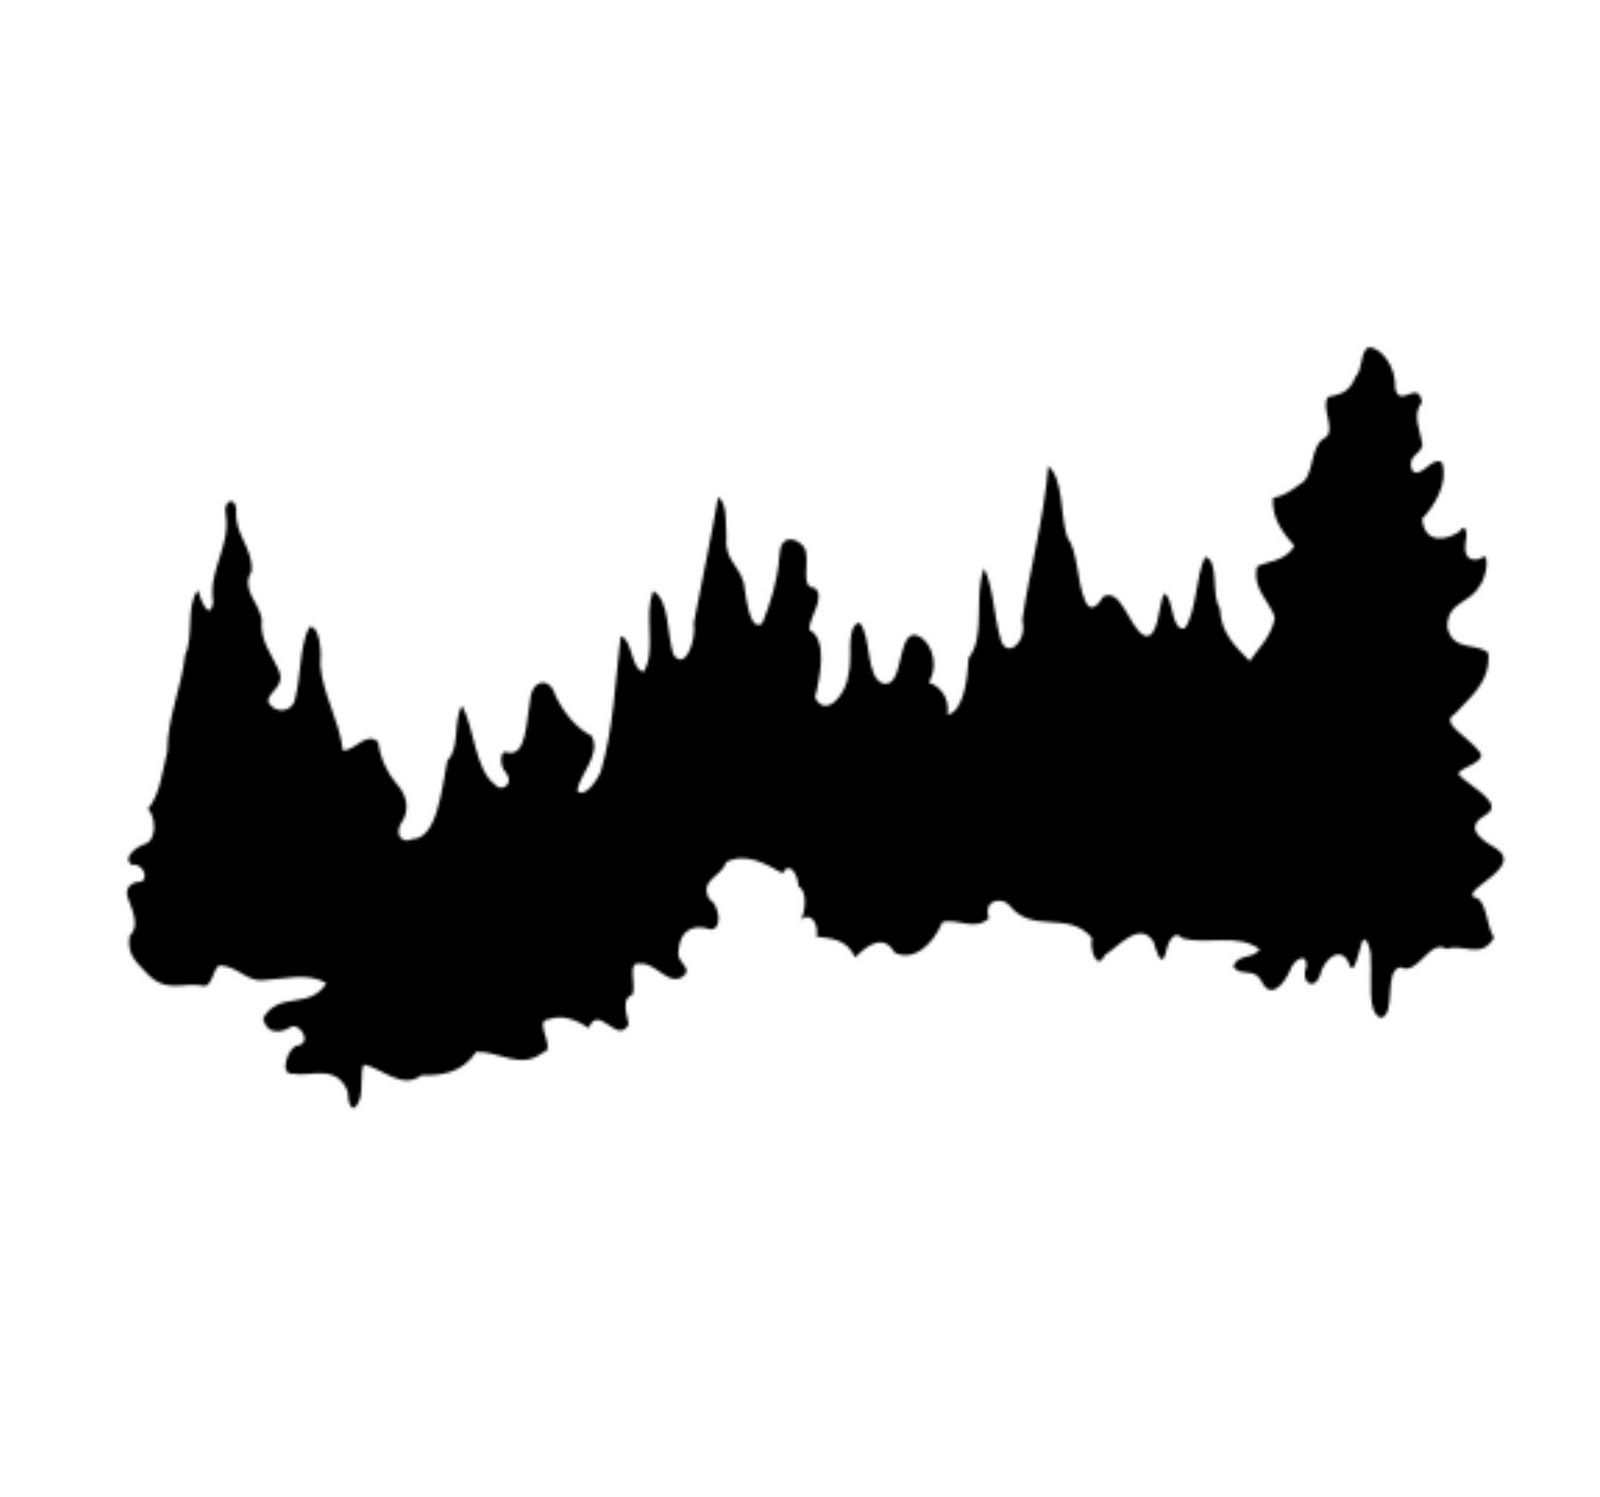 Tree line clipart 3 » Clipart Station.